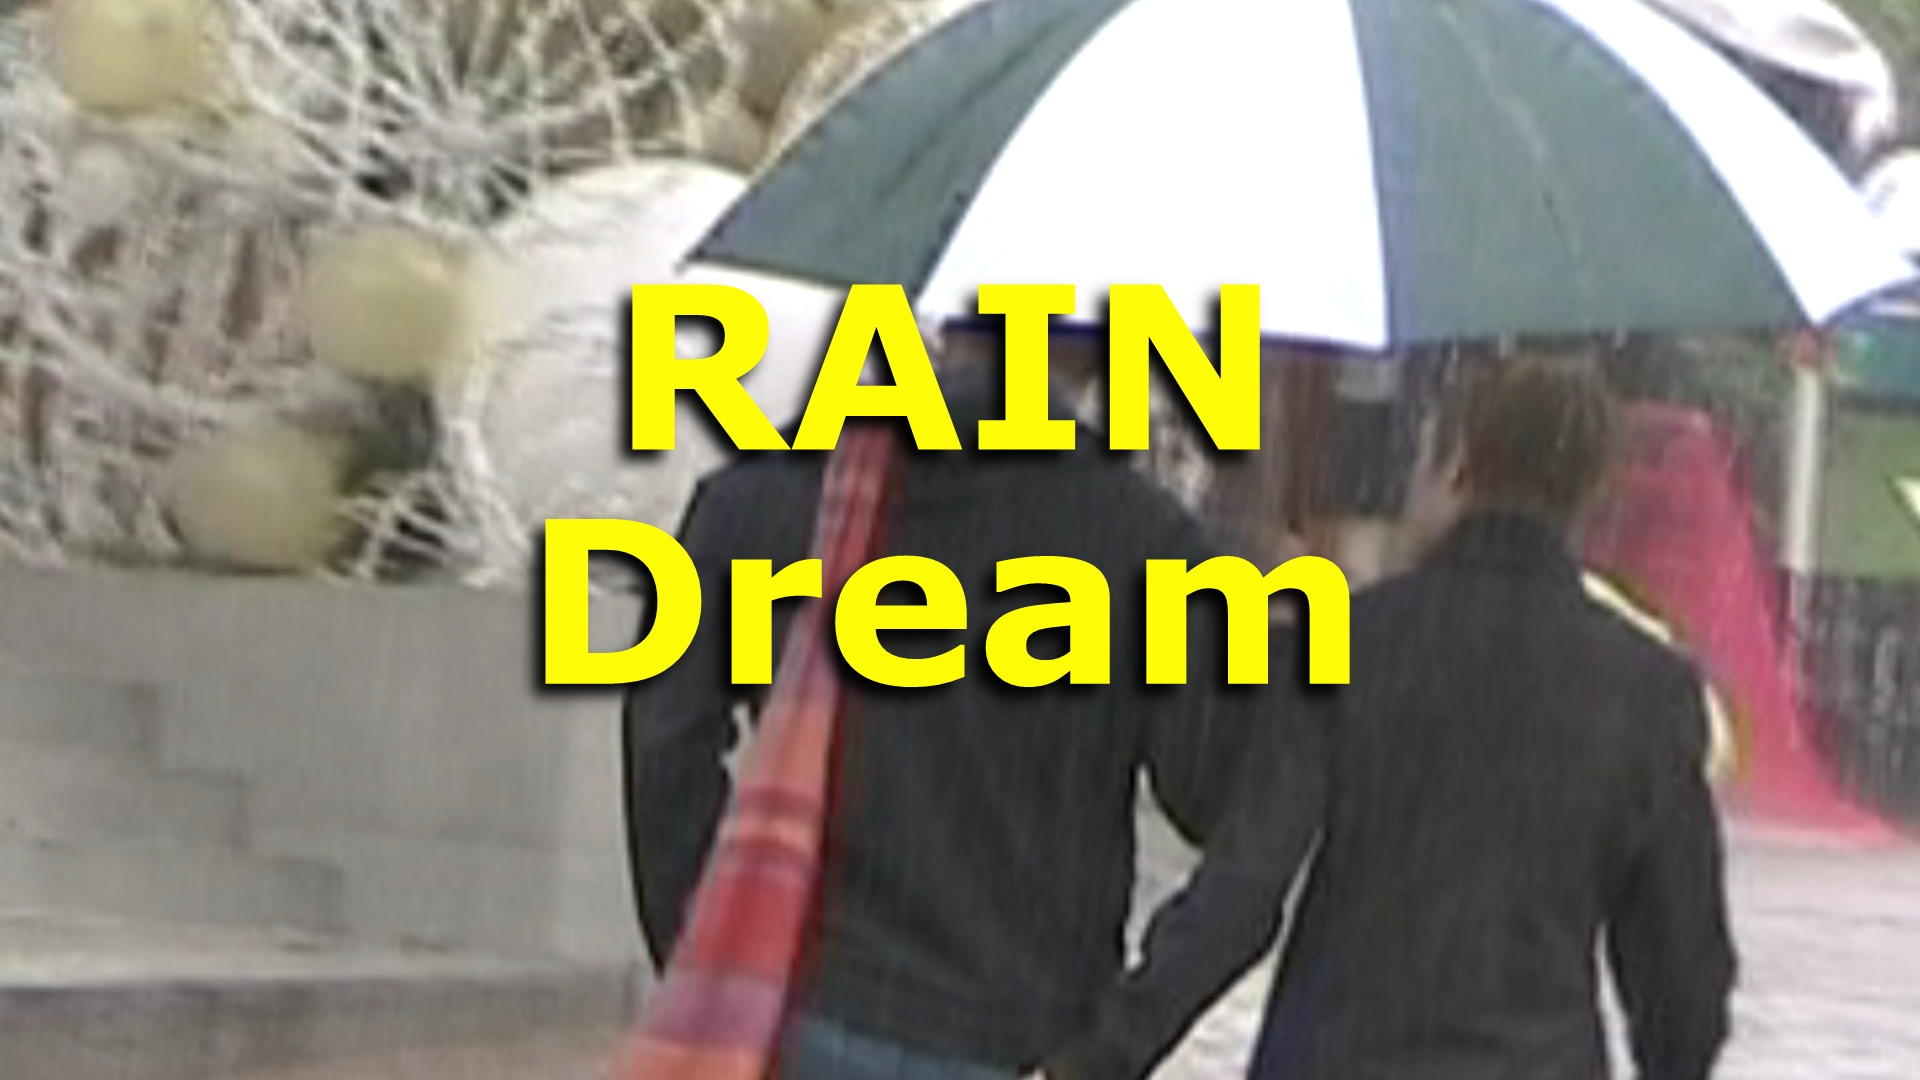 What does it mean to dream of rain